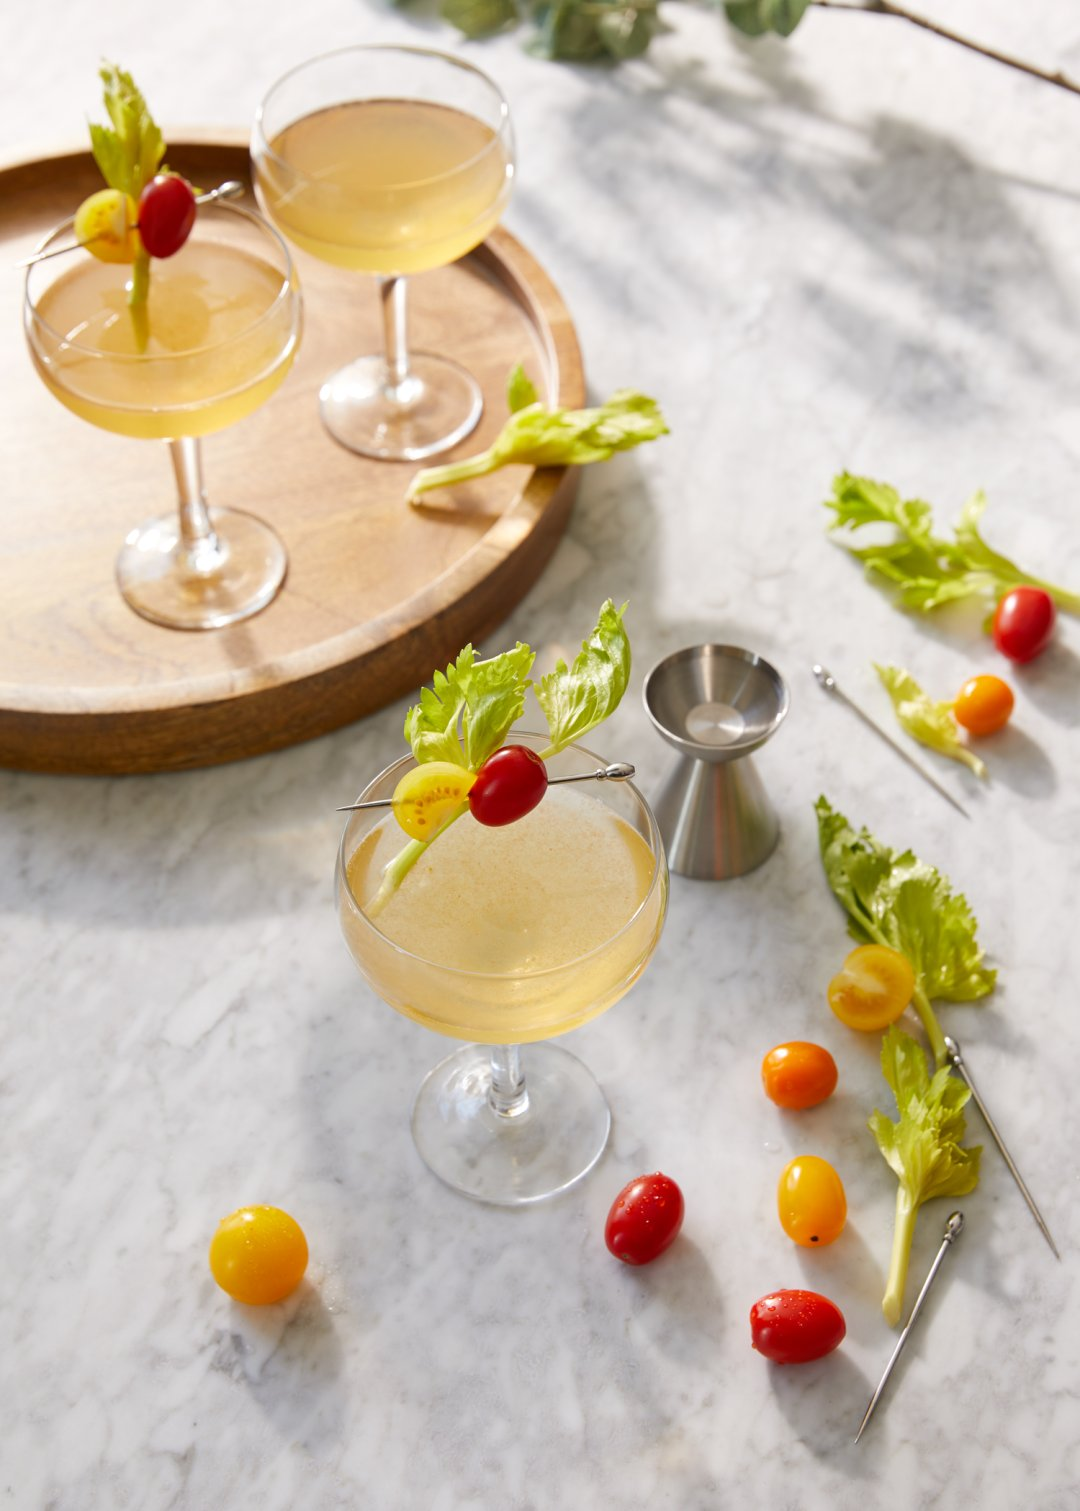 Champagne glasses garnished with halved red and yellow grape tomatoes and small leafy greens on a skewer